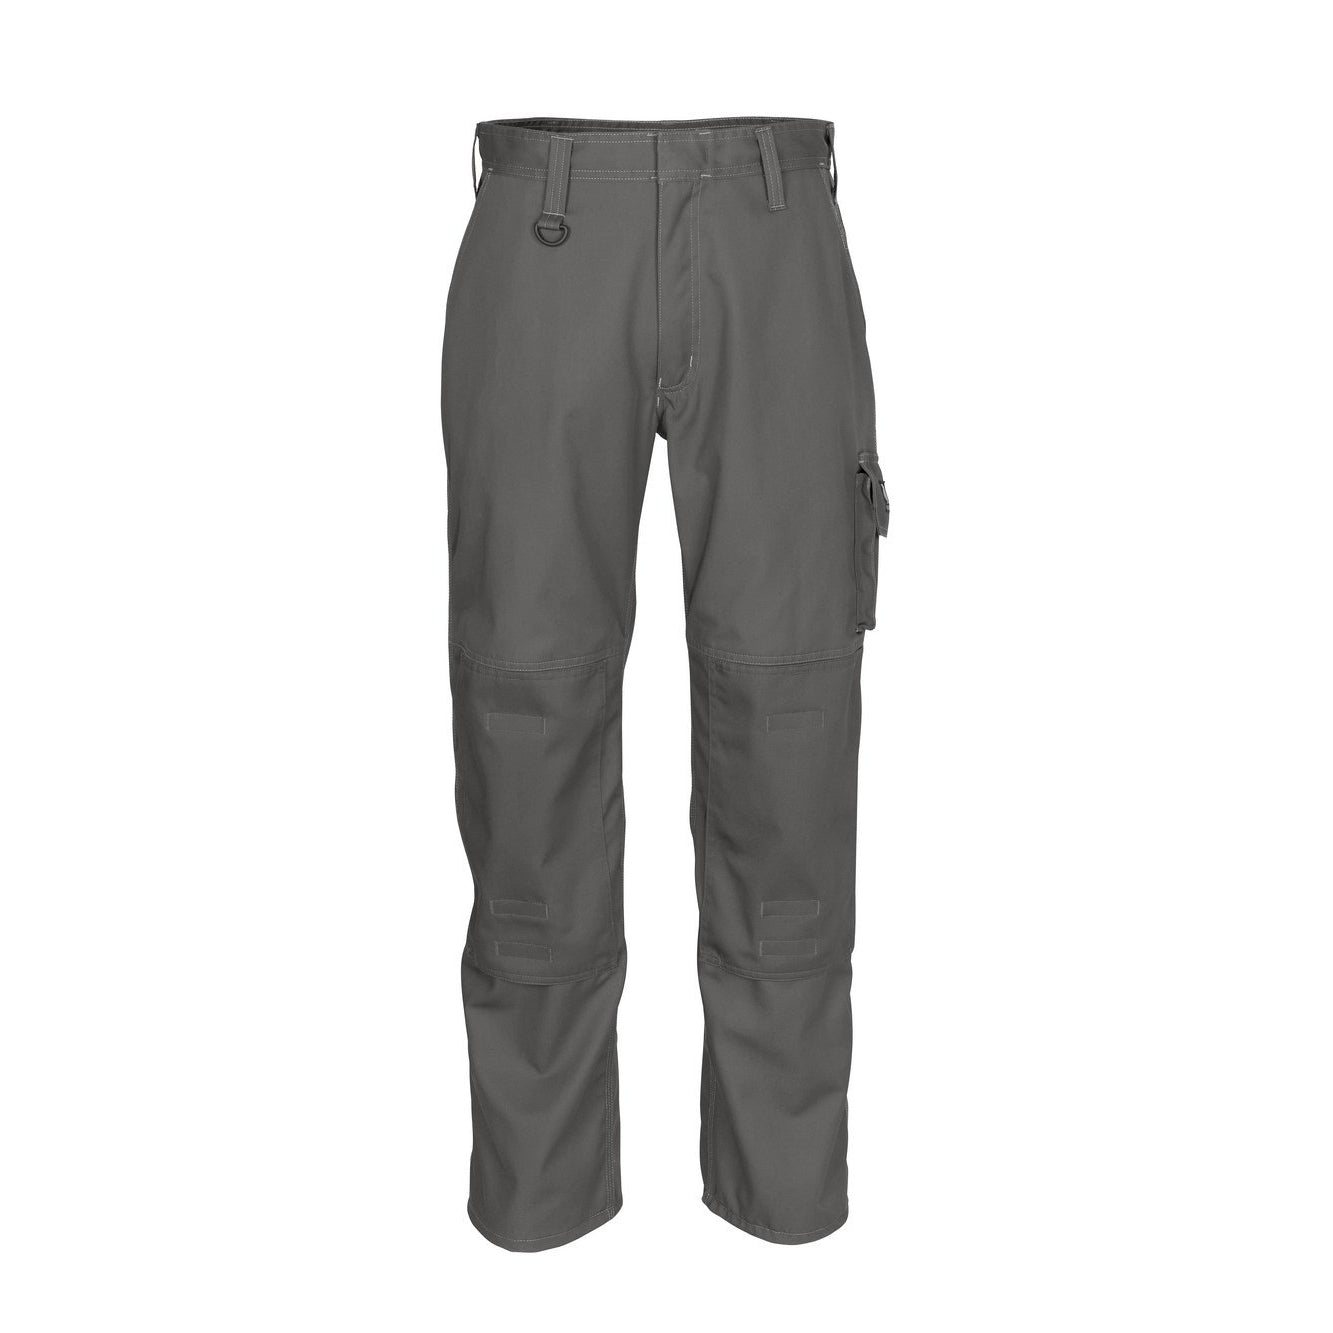 Mascot Pittsburgh Industry Trousers With Kneepad Pockets